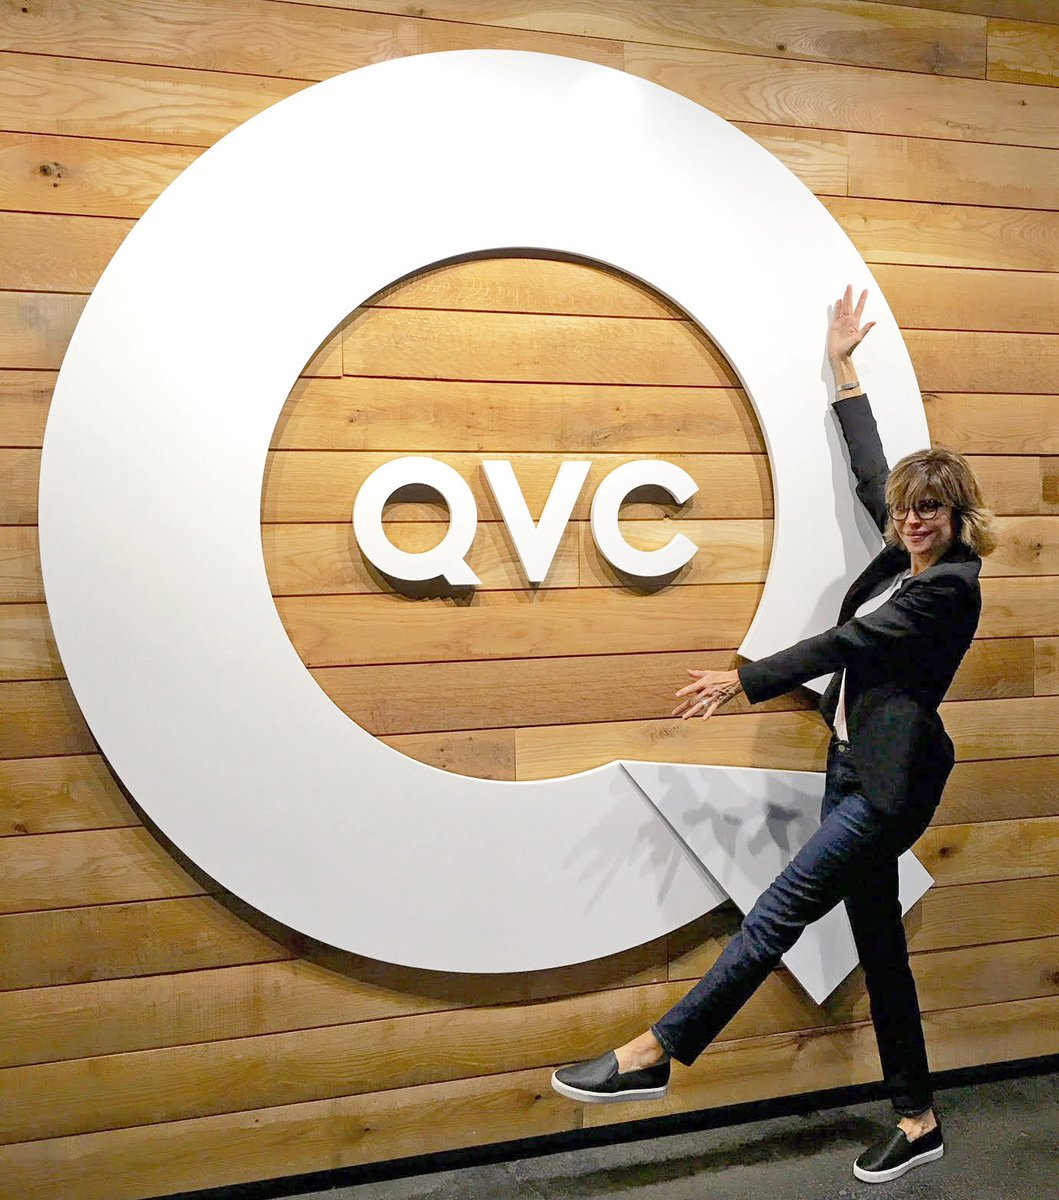 In one week, on September 23rd, I'm back at @QVC with my #LisaRinnaCollection! Shows at 9am & 7pm ET! ???????? https://t.co/F4wuPCF1I8